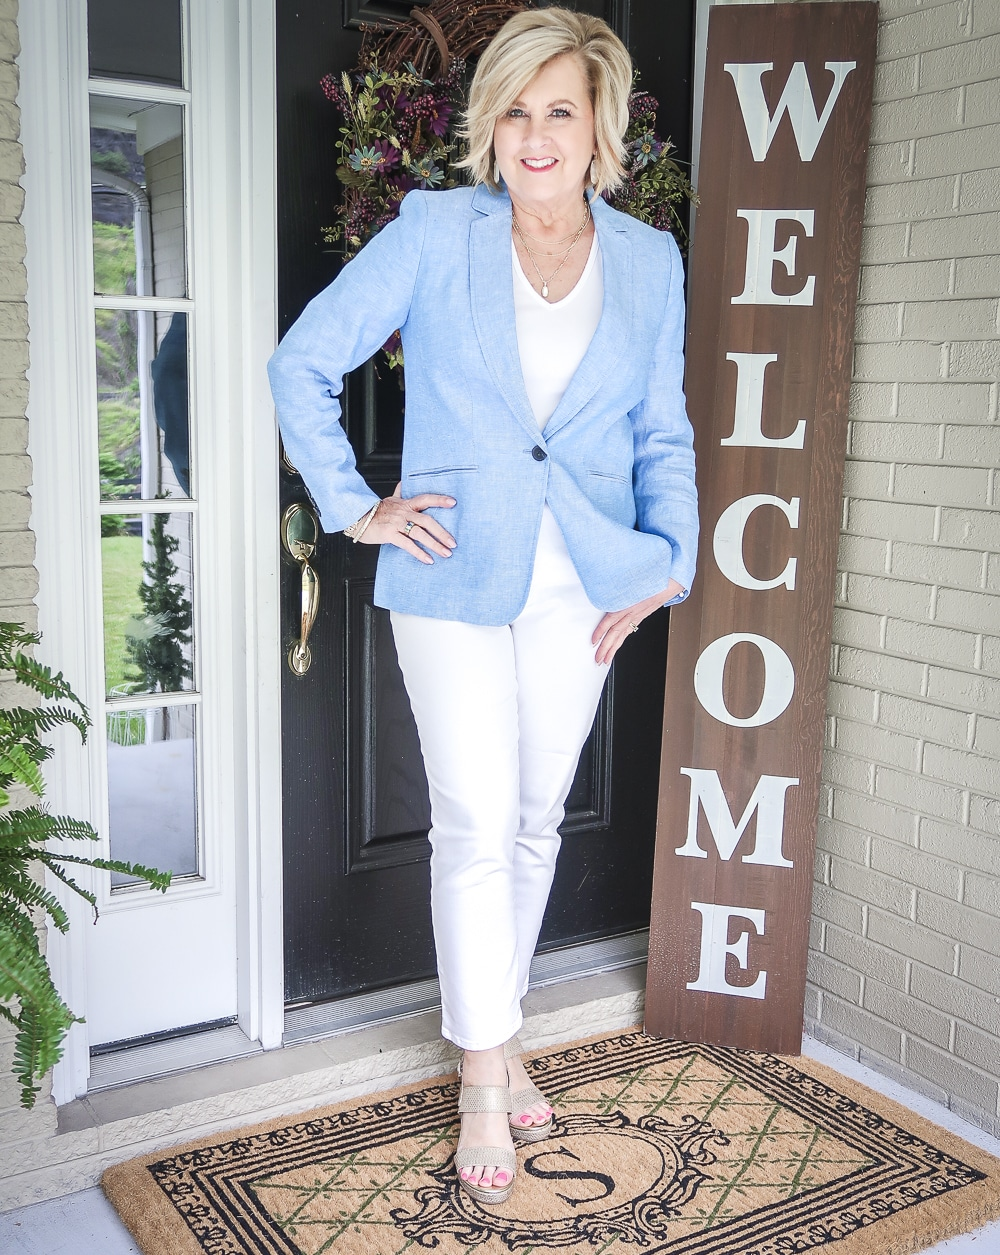 Fashion Blogger 50 Is Not Old is wearing a white outfit with a blue linen blazer from Talbots and gold espadrilles from Walmart